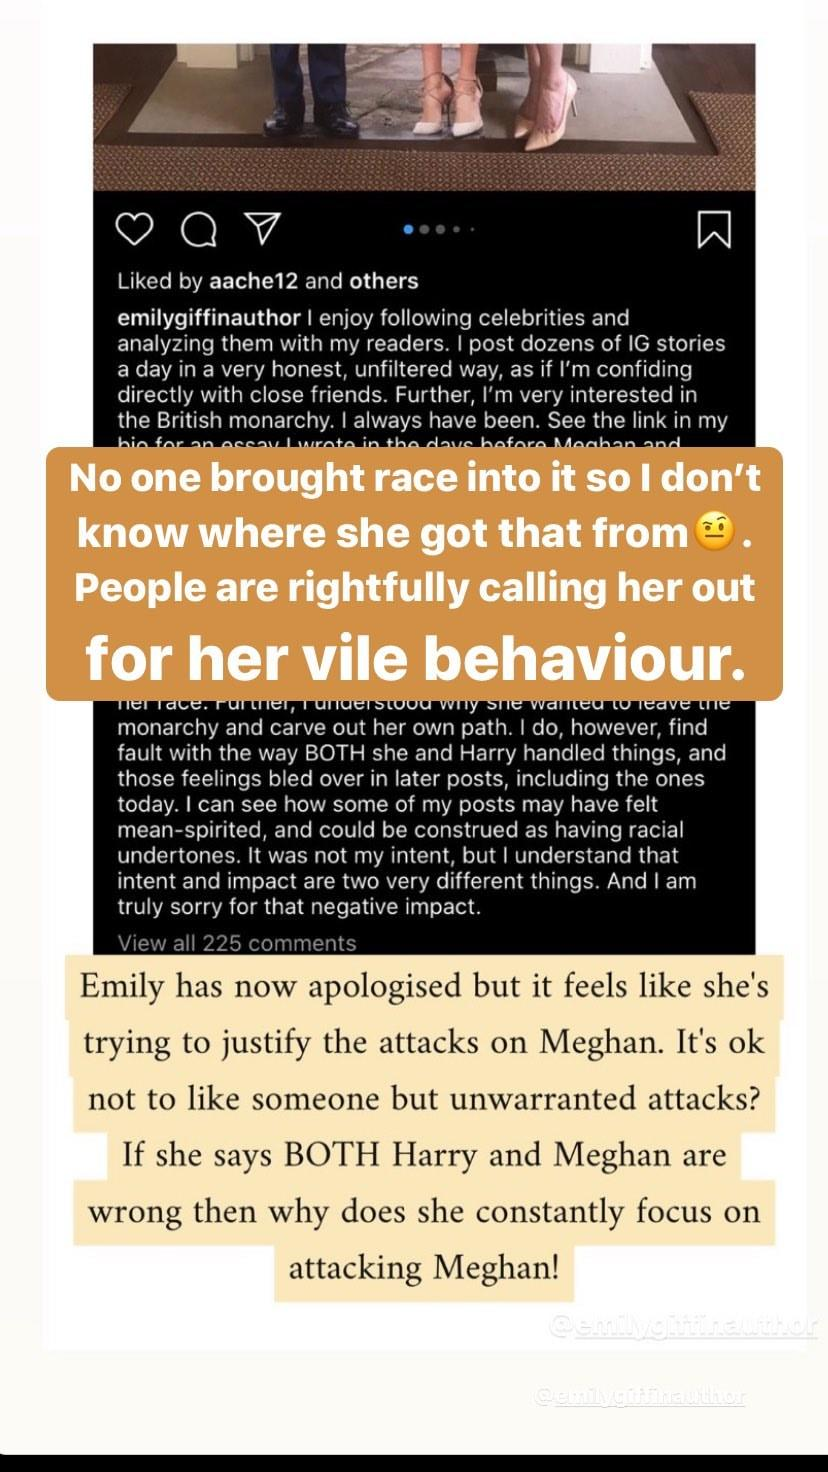 Emily shared an apology on Instagram, however, some were confused about why she brought the issue of race into it. Photo: Instagram/_duchess_of_sussex